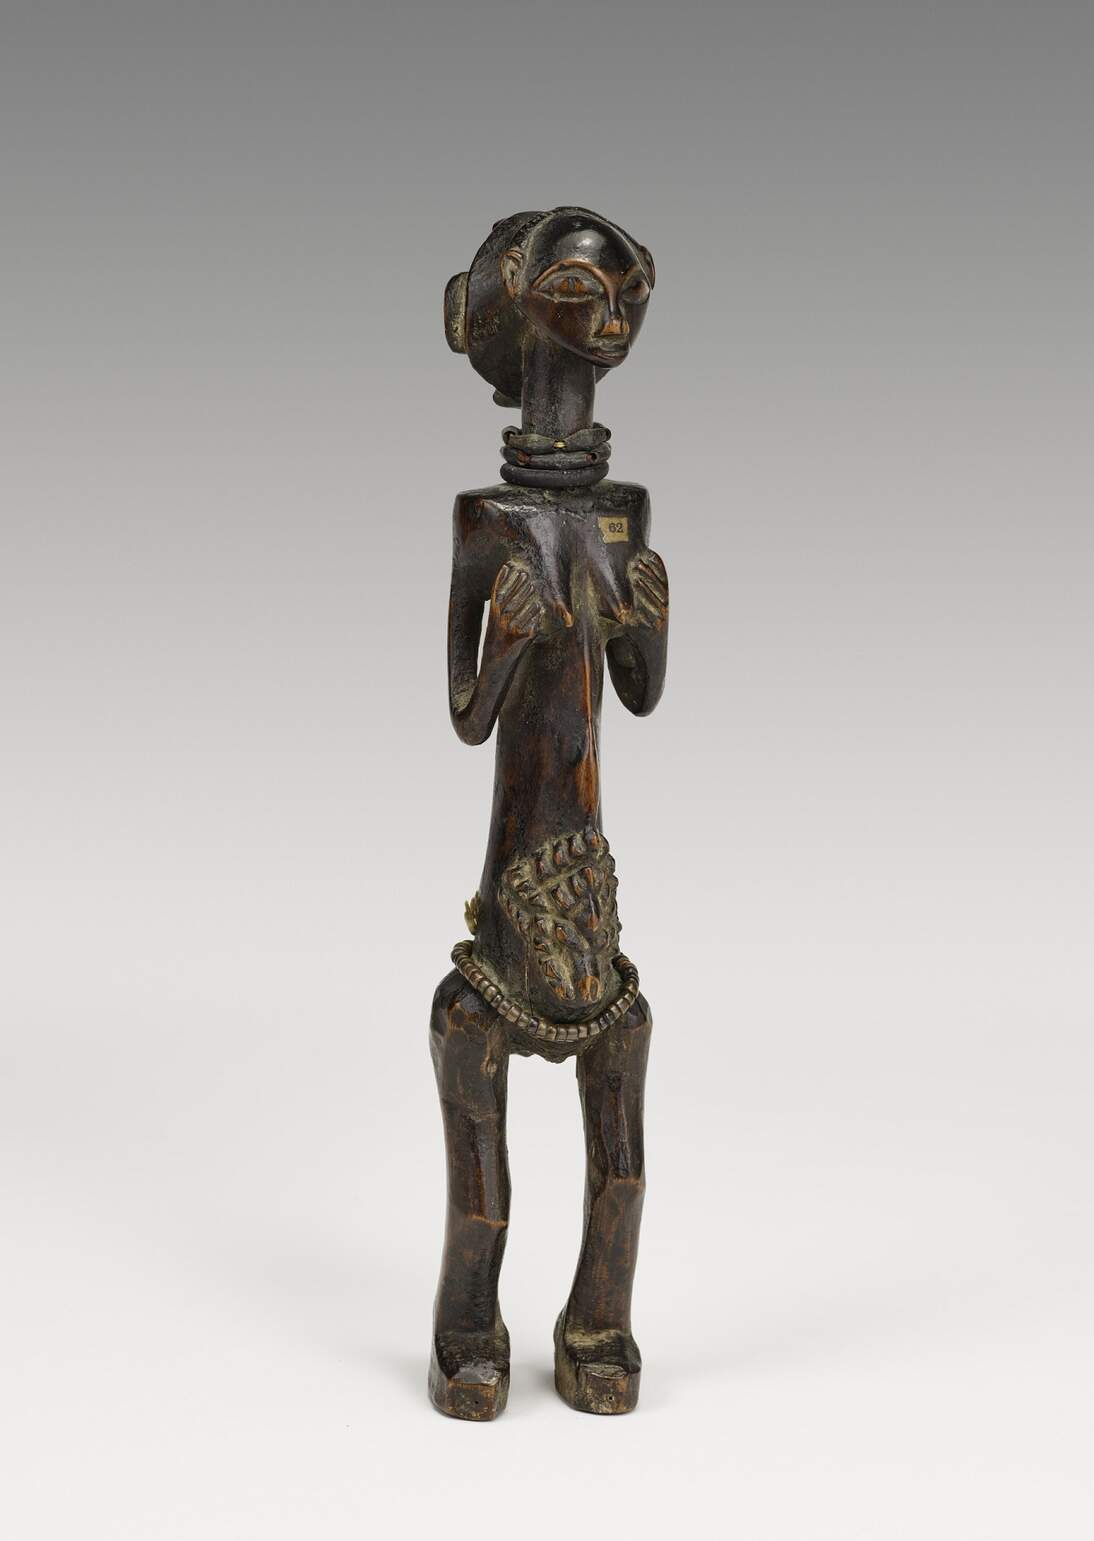 Luba artist, Figure, 19th century, Democratic Republic of Congo